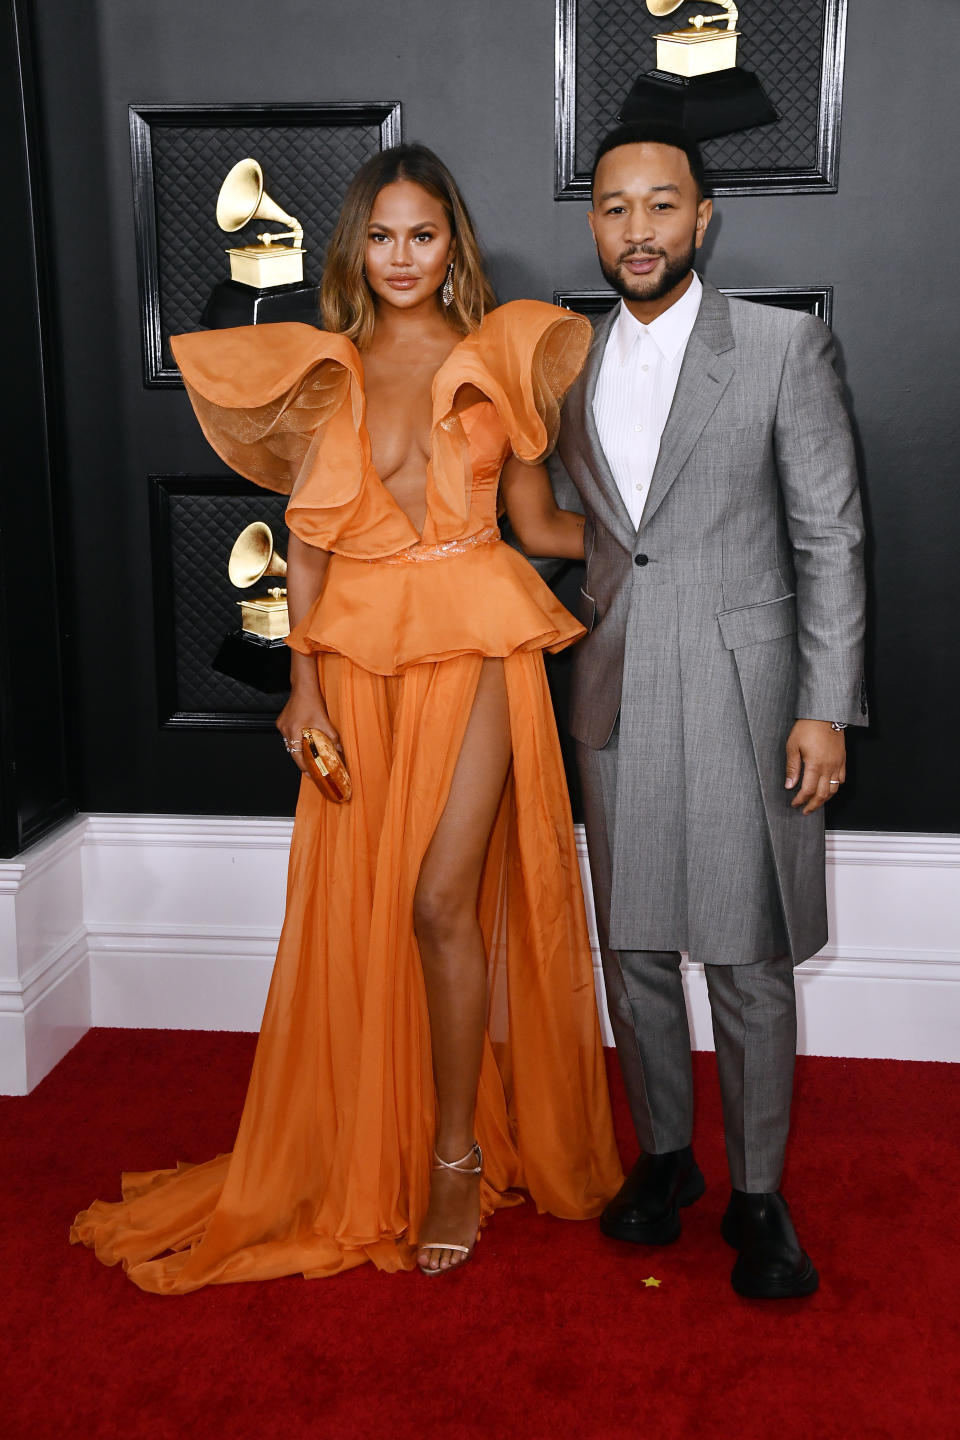 """Teigan brought the glamour to the red carpet to support her husband and Grammy nominee, John Legend. The """"Cravings"""" author and model was a tangerine dream in a ruffled gown with thigh-high slit. Not to be outdone, Legend flexed his fashion muscles in a steel grey suit with an asymmetrical hem."""